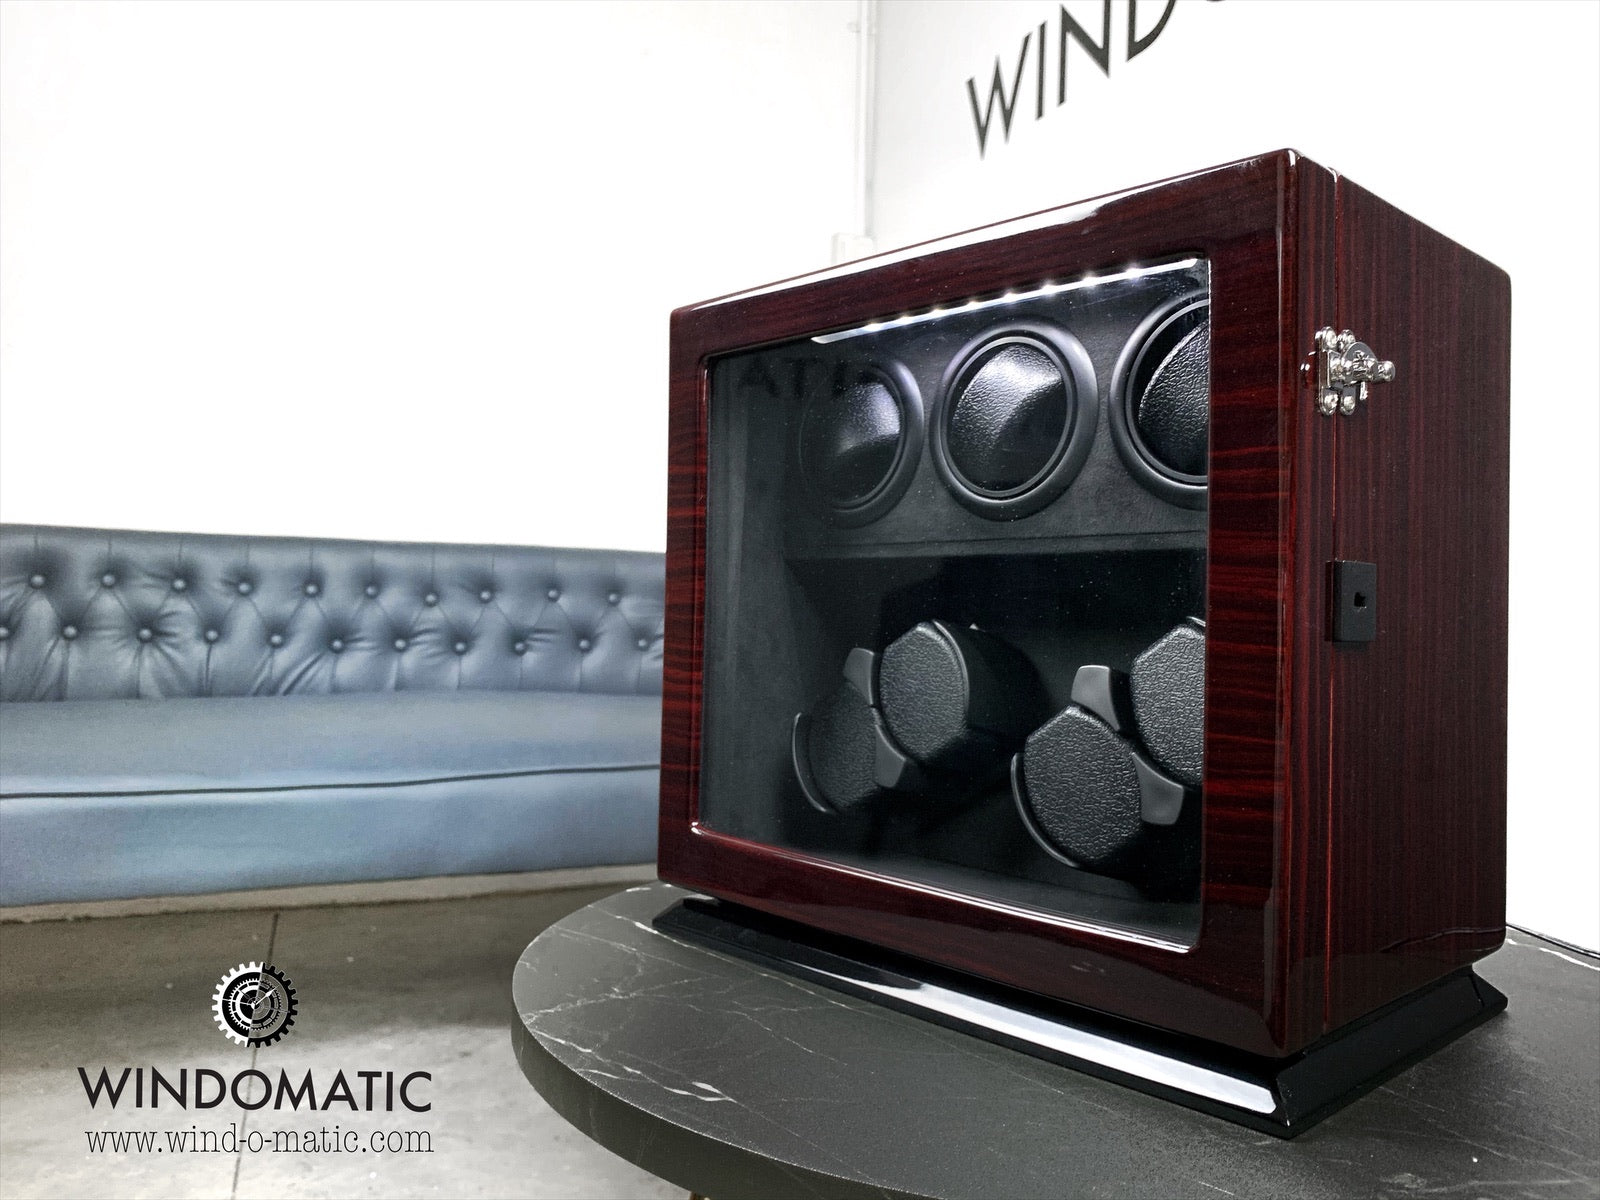 7+0 Windomatic Watch Winder